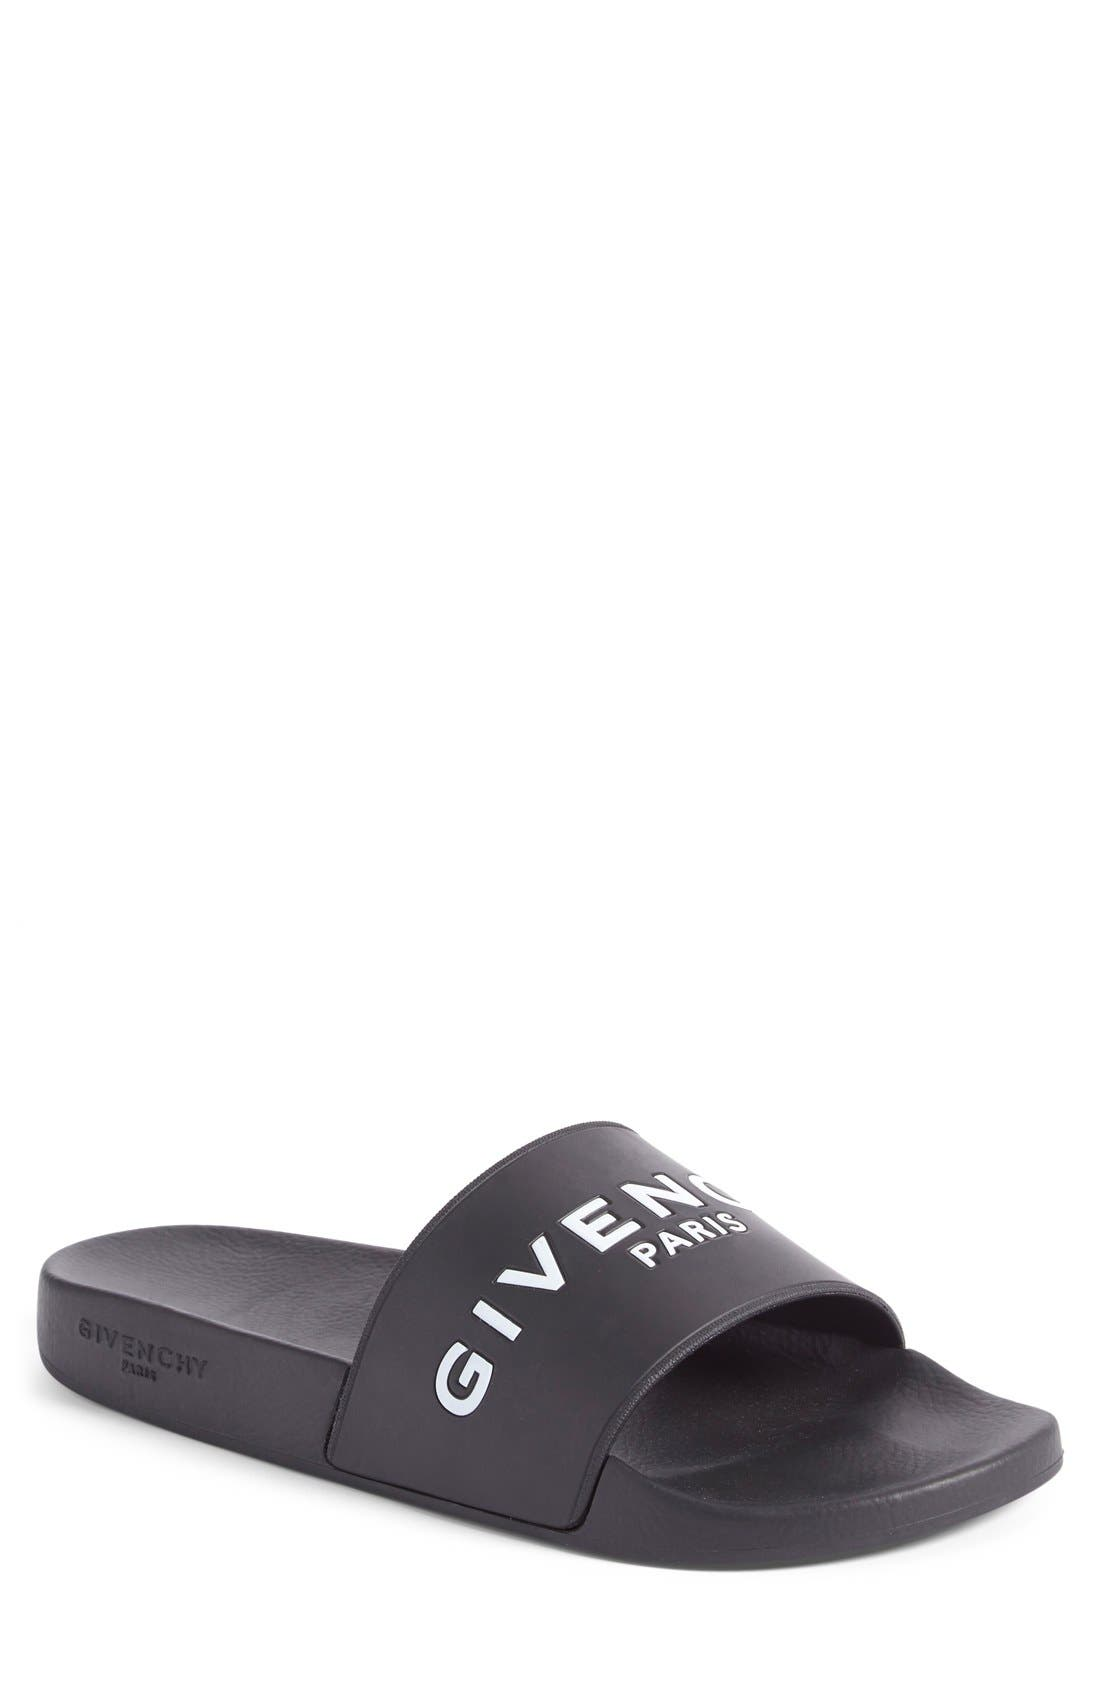 Givenchy Slide Sandal (Men)